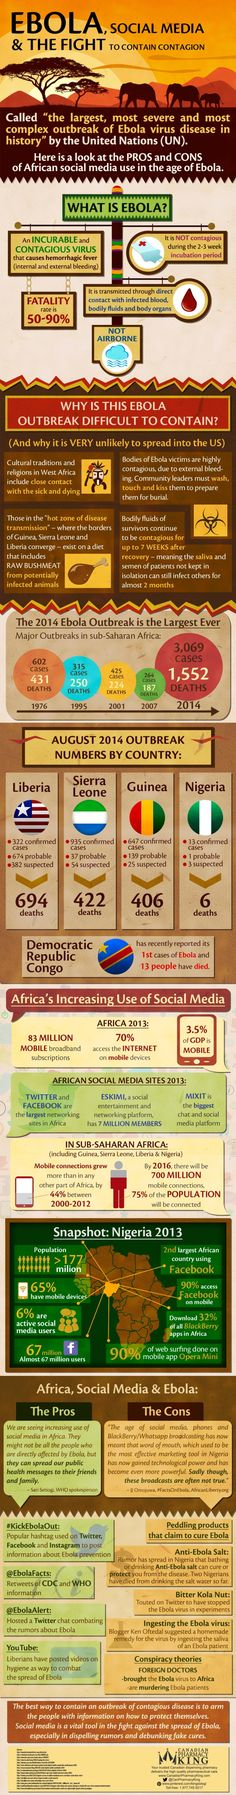 Ebola, Social Media and The Fight To Contain Contagion #infographic #Ebola #Health